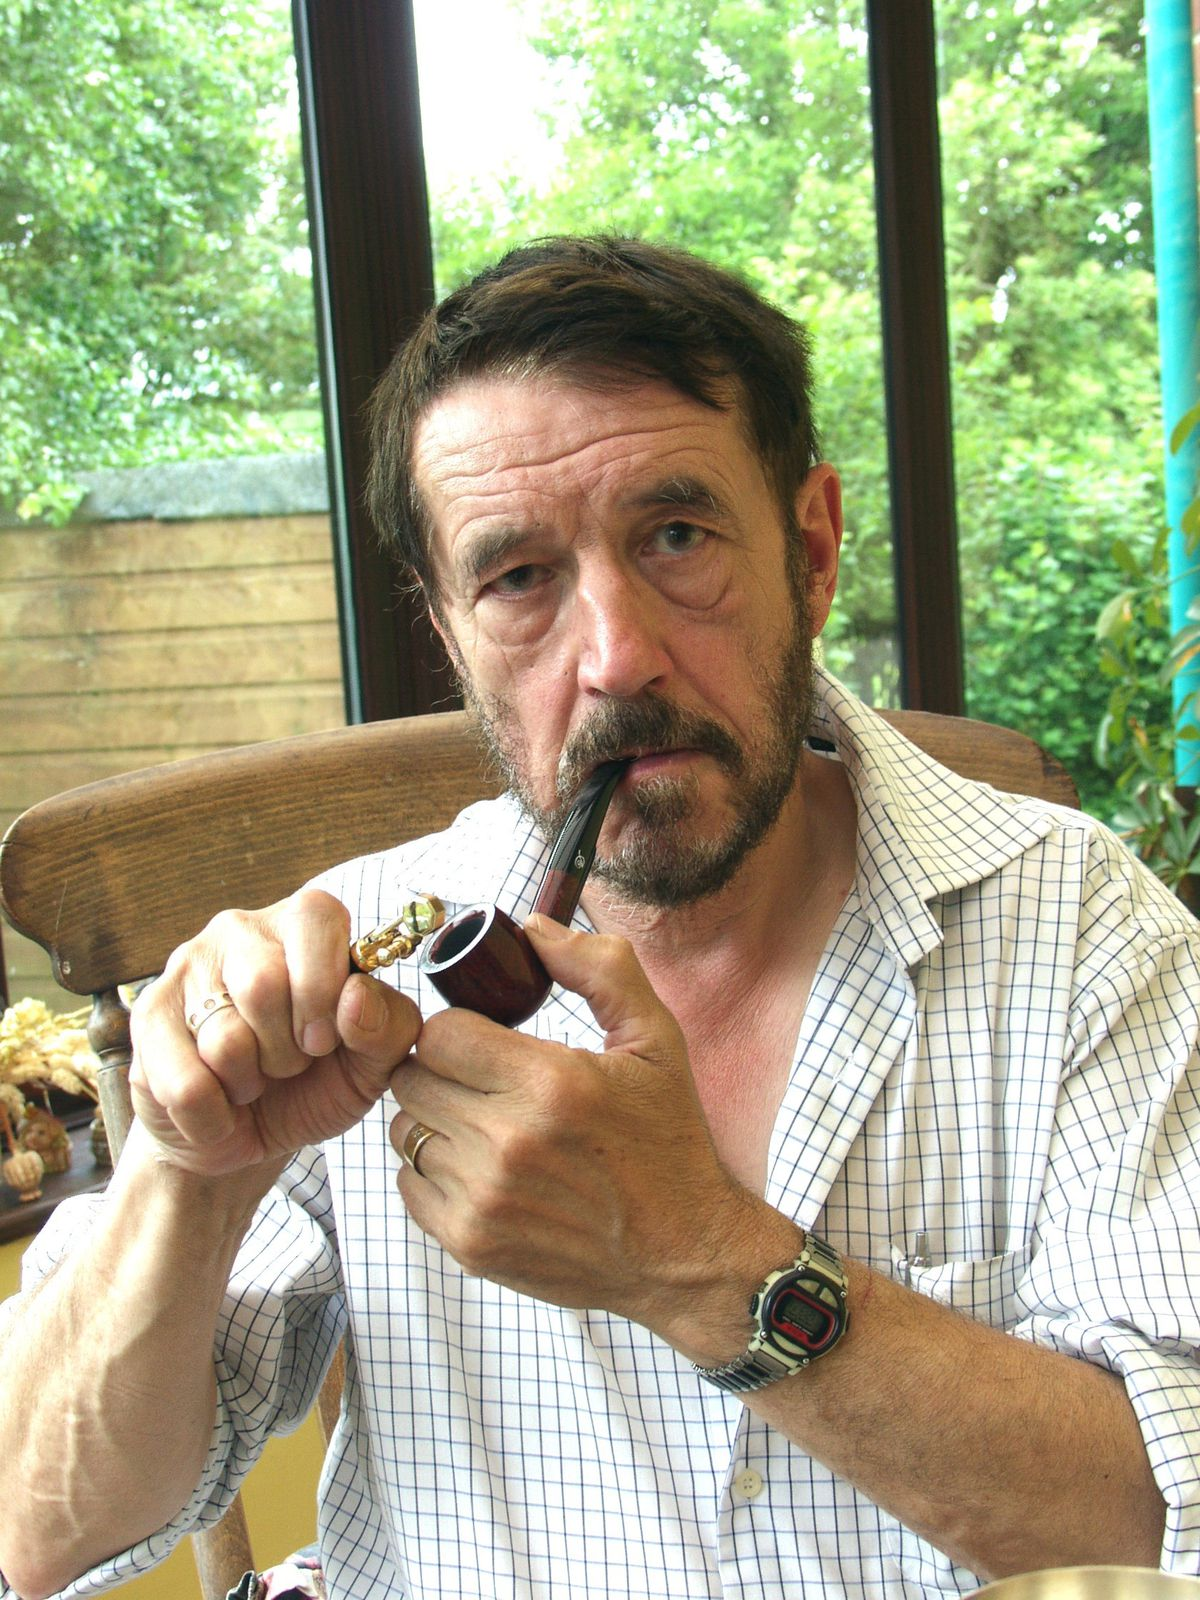 Shropshire author Guy Smith was British Pipe Smoking Champion in 1996 and 2003